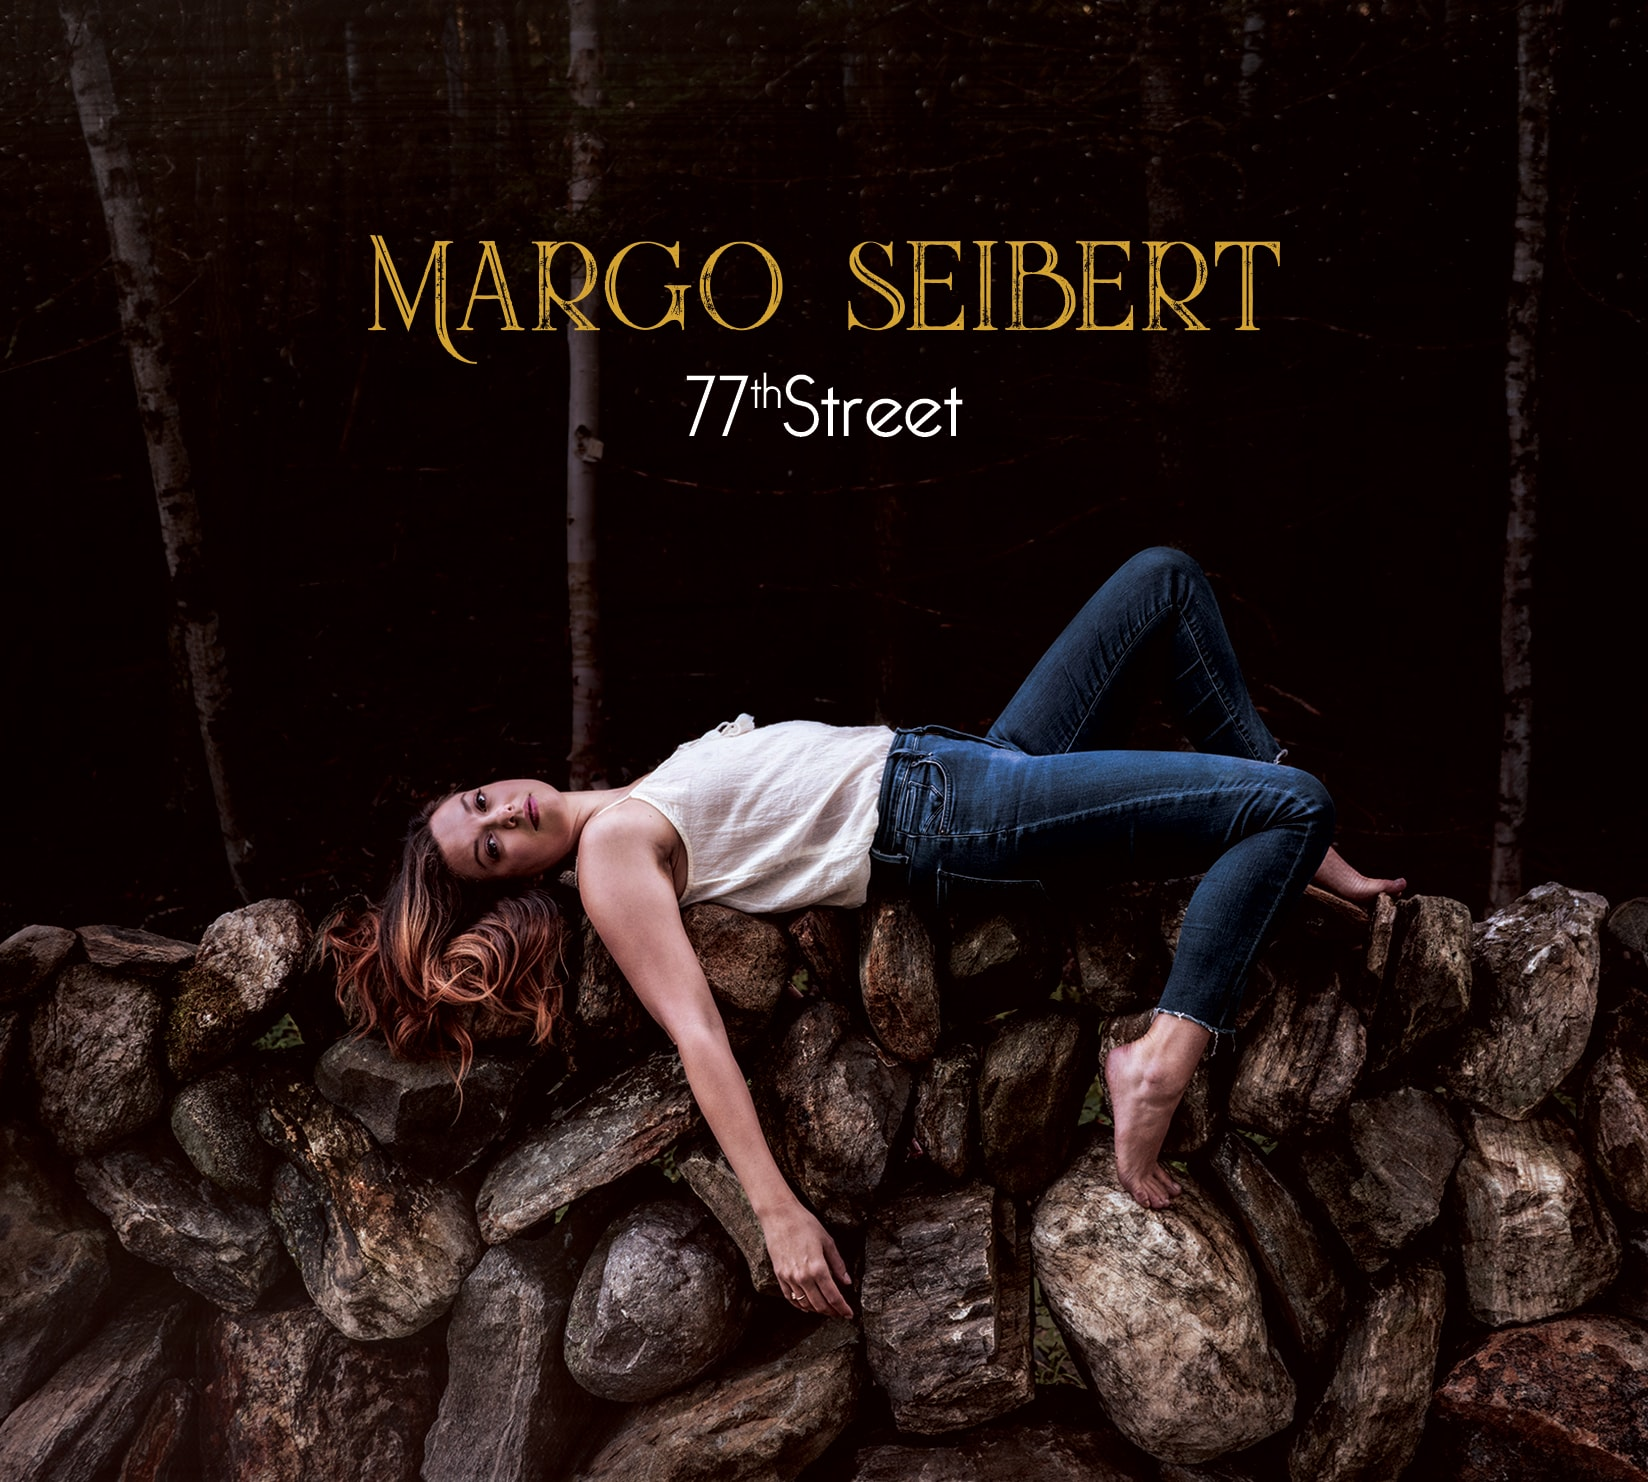 Margo Seibert's debut album '77th Street,' was released by Yellow Sound Label in October 2018.